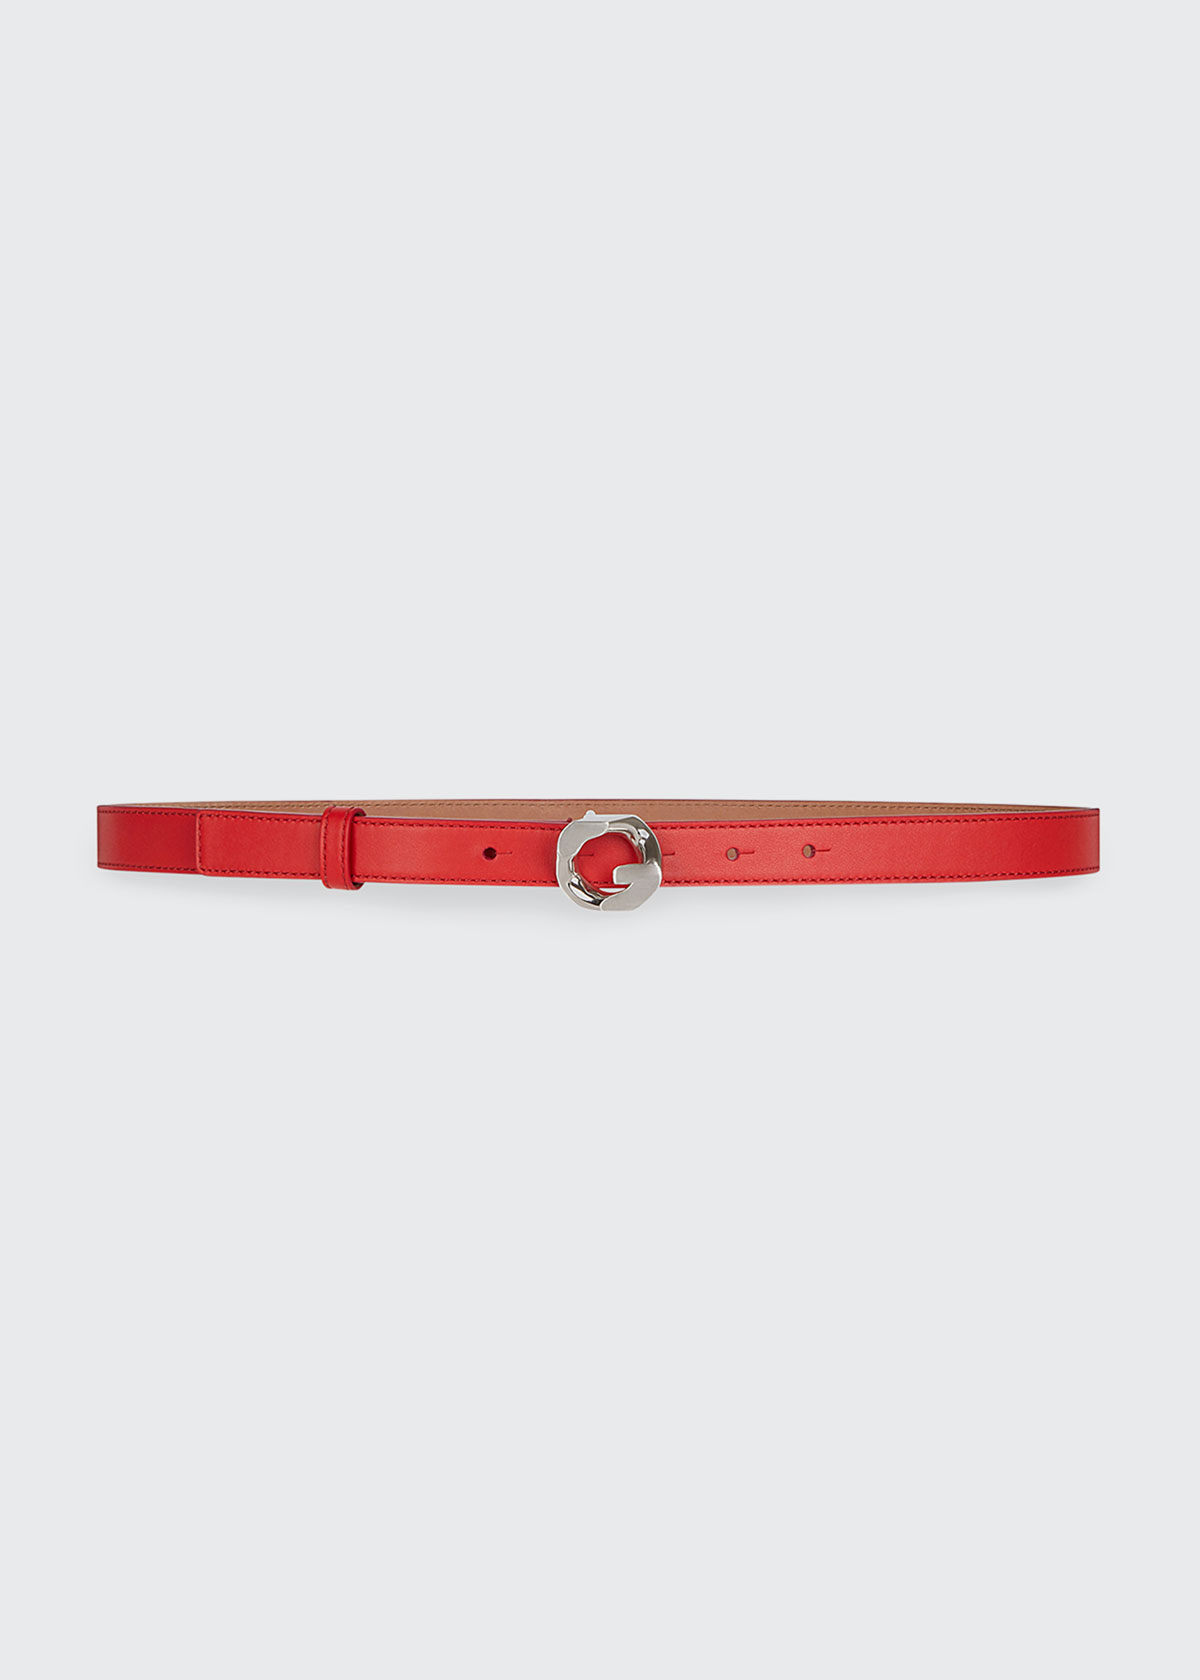 Givenchy Belts G CHAIN 20MM LEATHER BELT